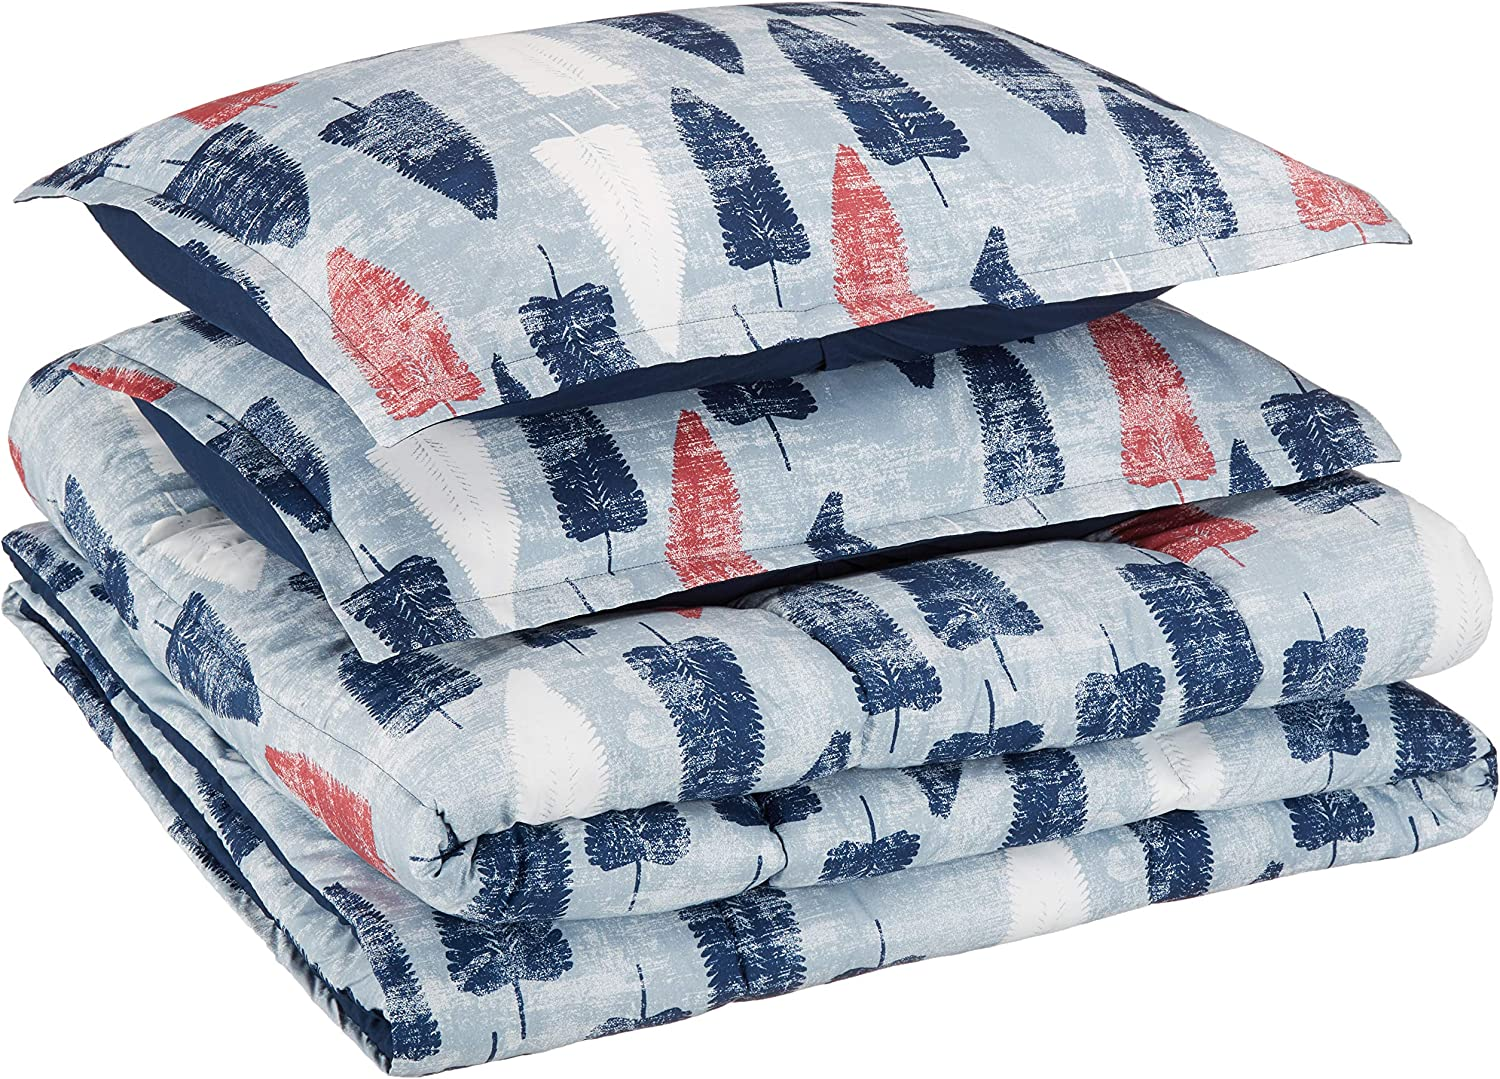 AmazonBasics Kid's Comforter Set - Soft, Easy-Wash Microfiber - Full/Queen, Blue and Red Feathers